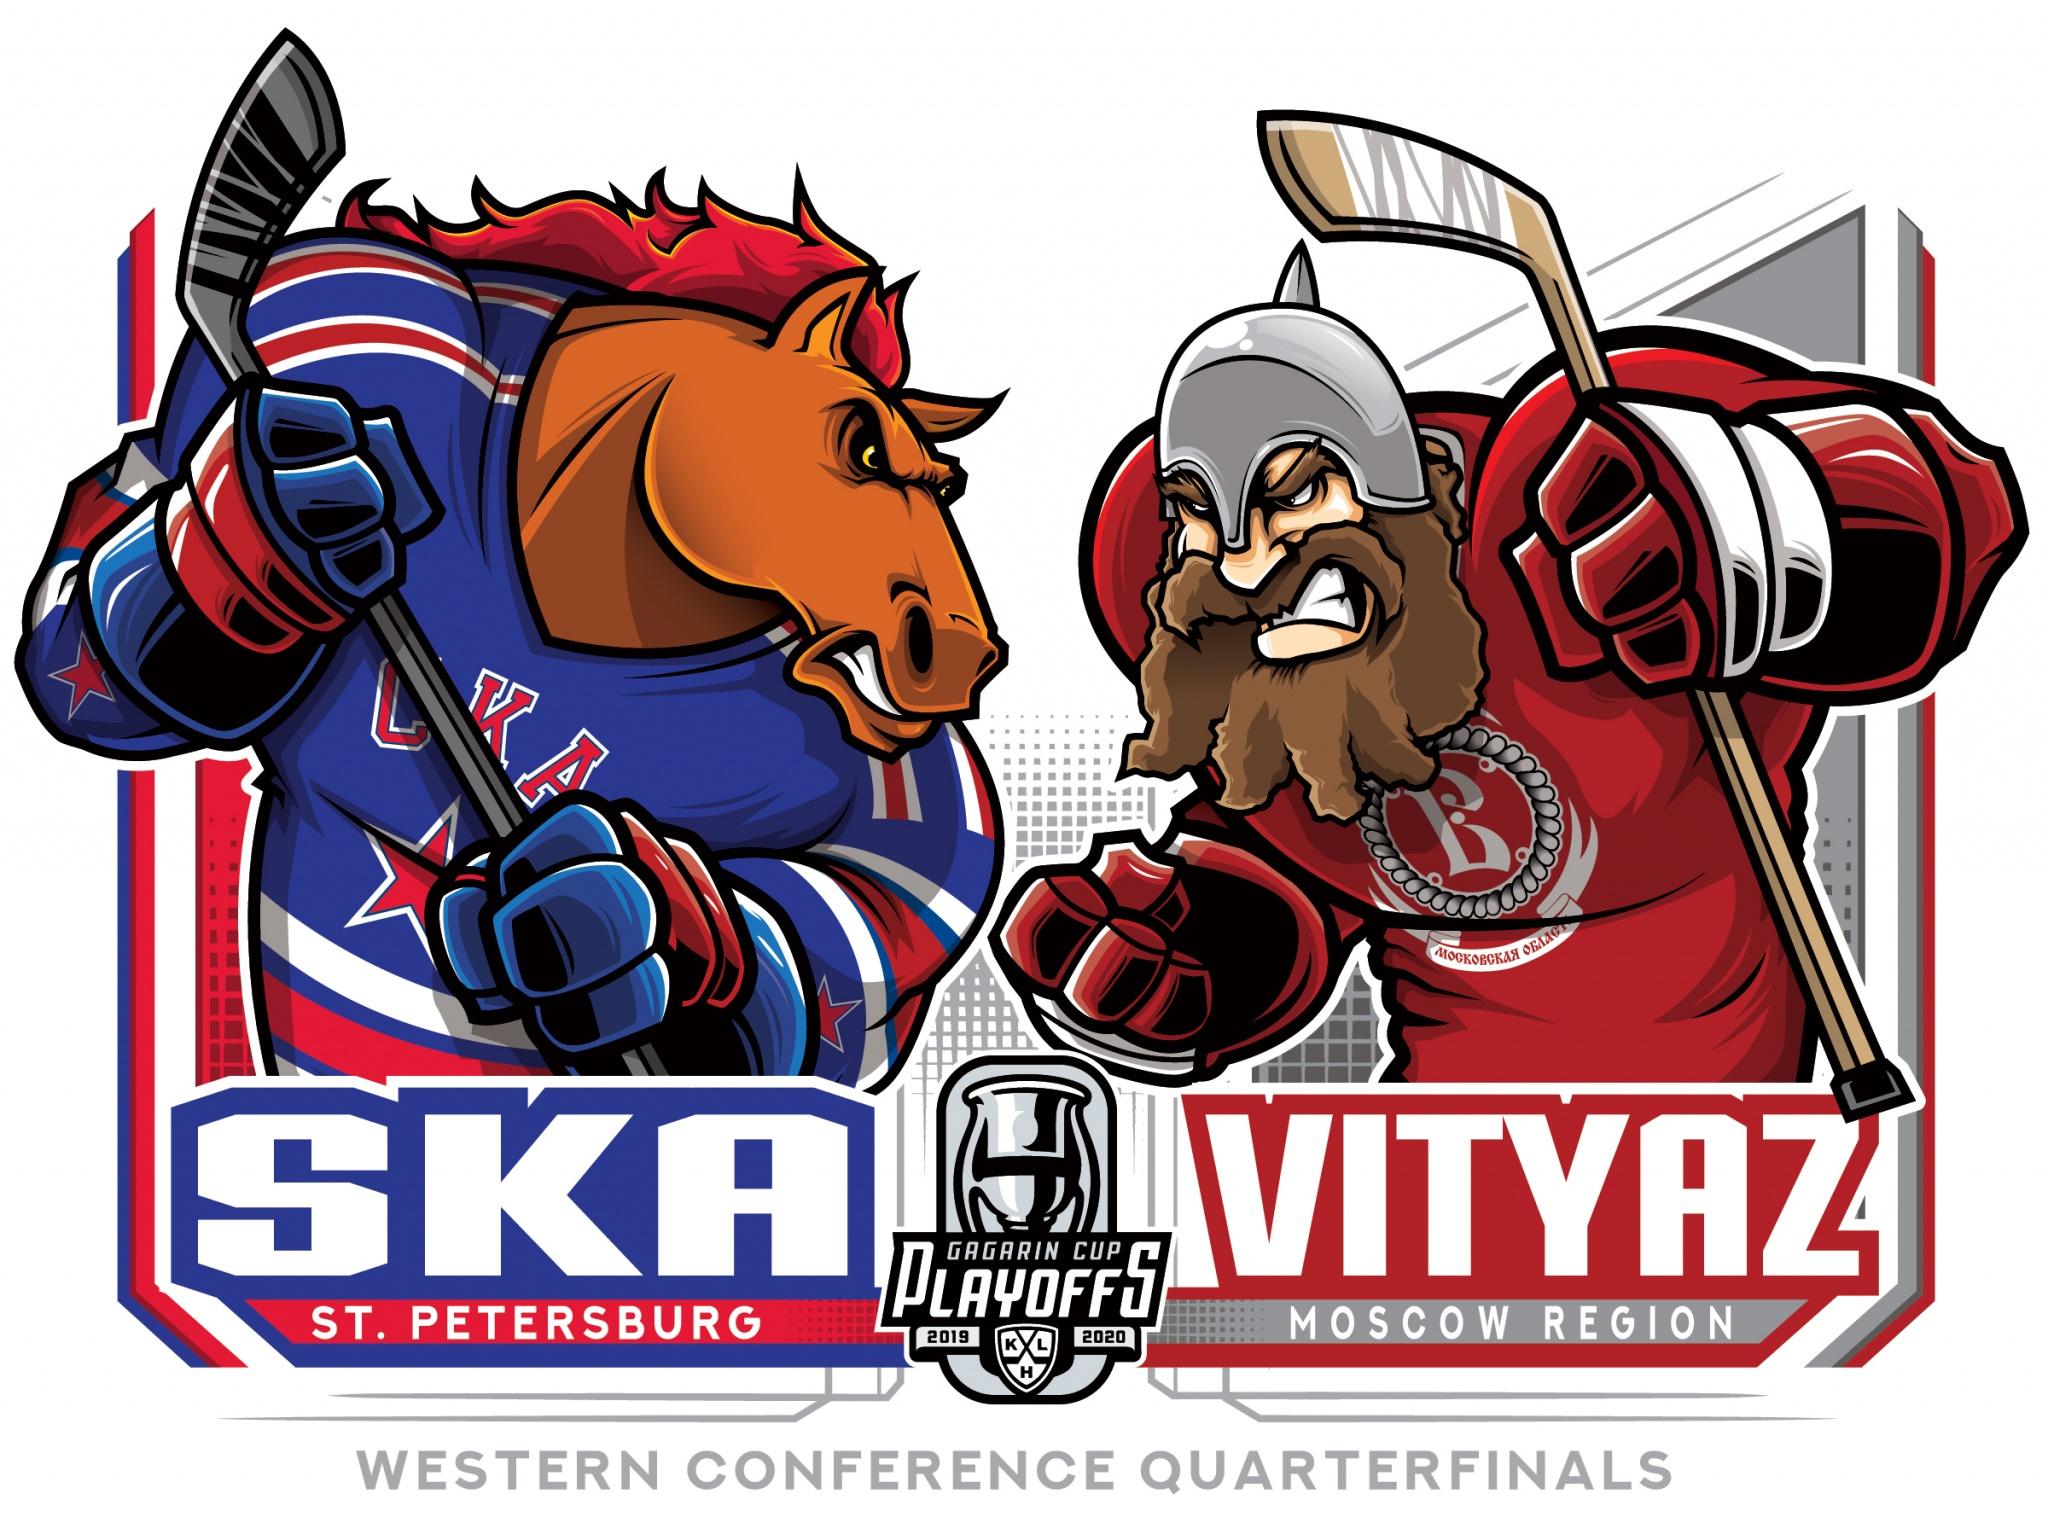 2-7_2020-KHL-PLAYOFFS-ROUND-1-SKA-VIT-ENGLISH.jpg